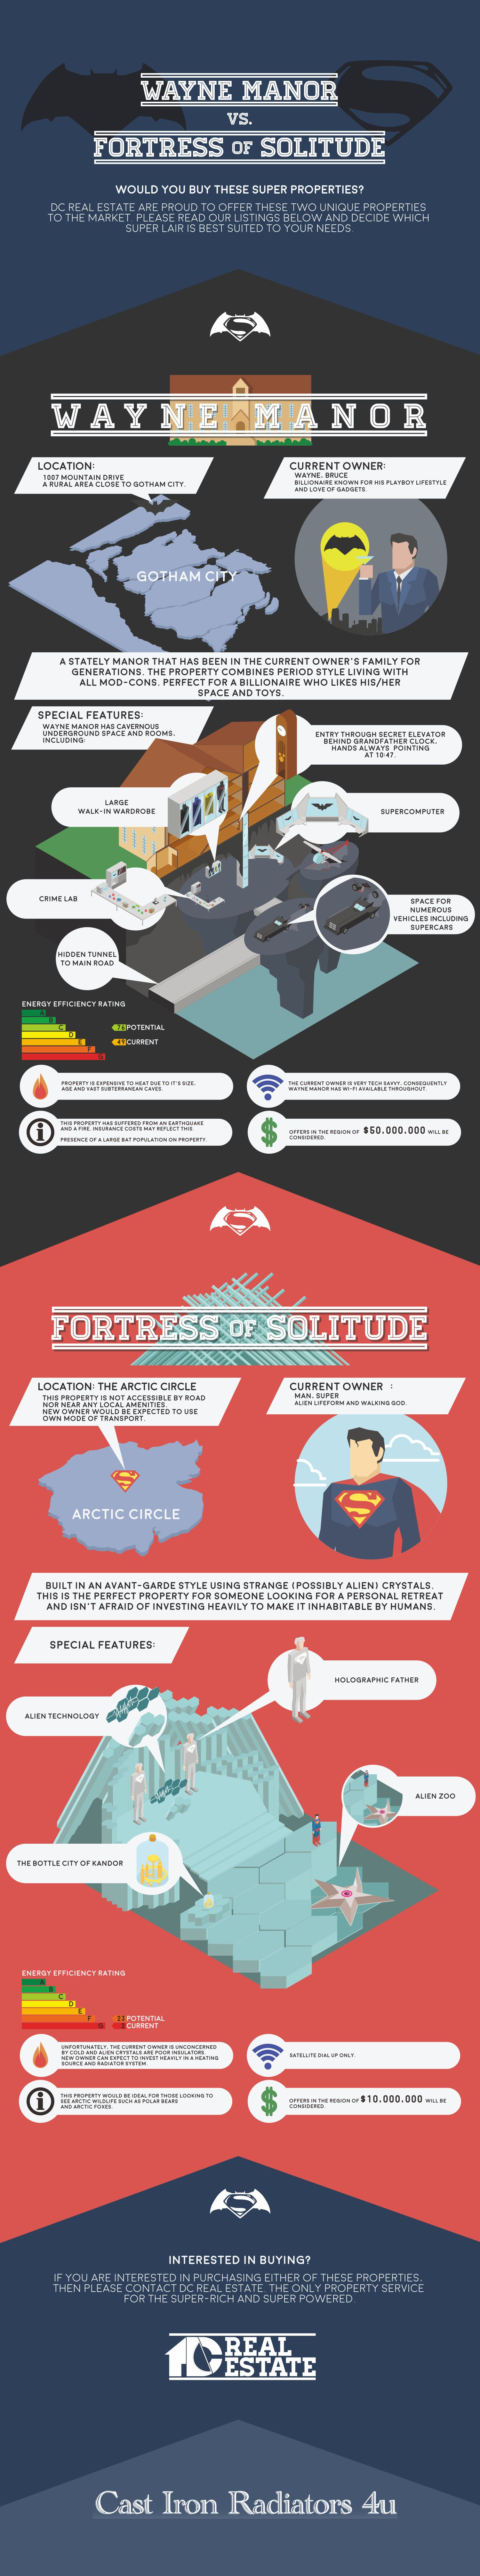 Wayne Manor vs. Fortress Of Solitude [Infographic]